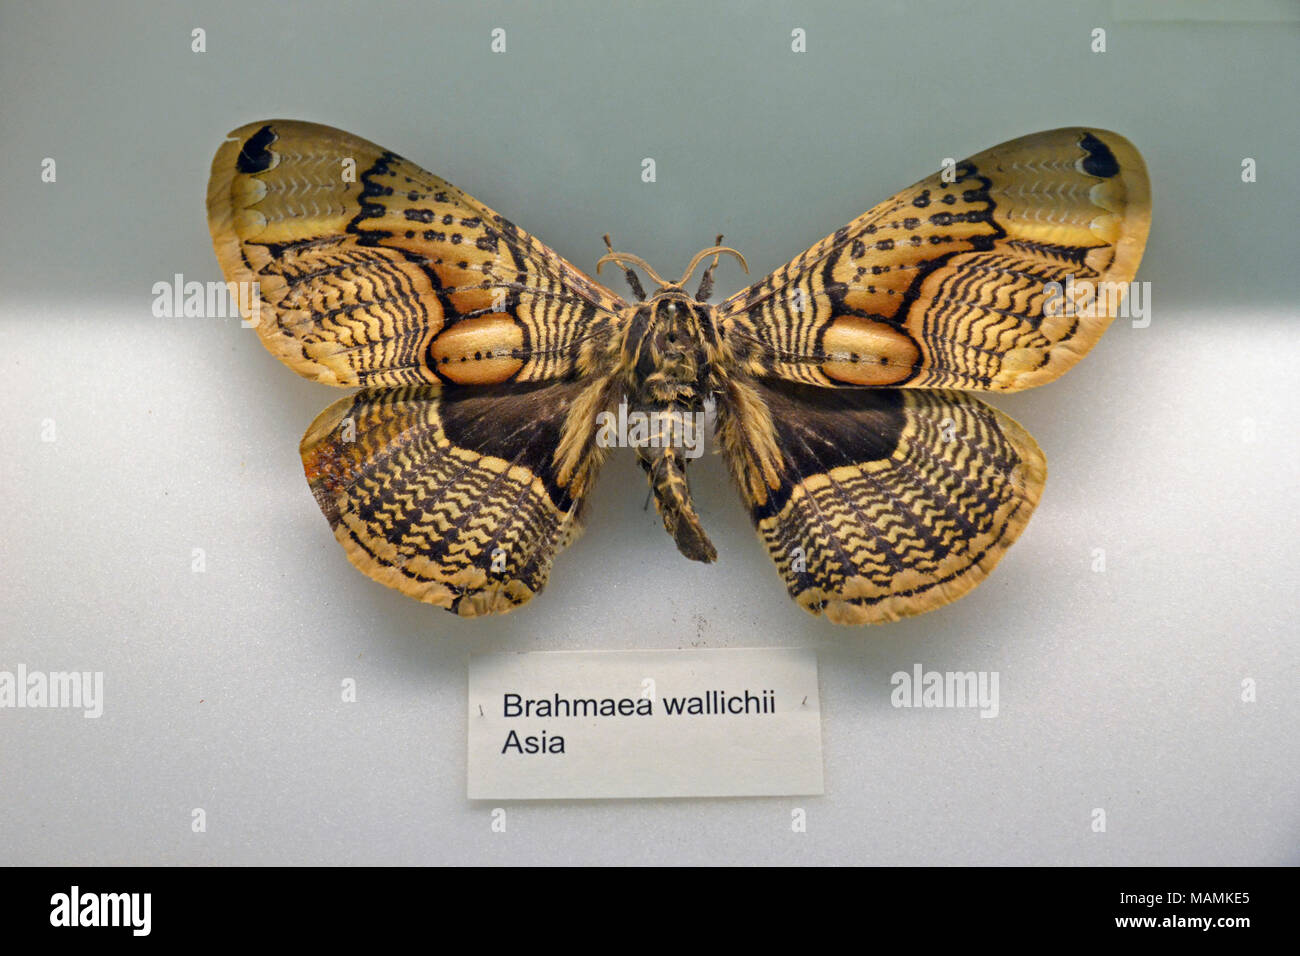 Brahmaea wallichii, or owl moth at the Natural History Museum at Tring, UK. - Stock Image